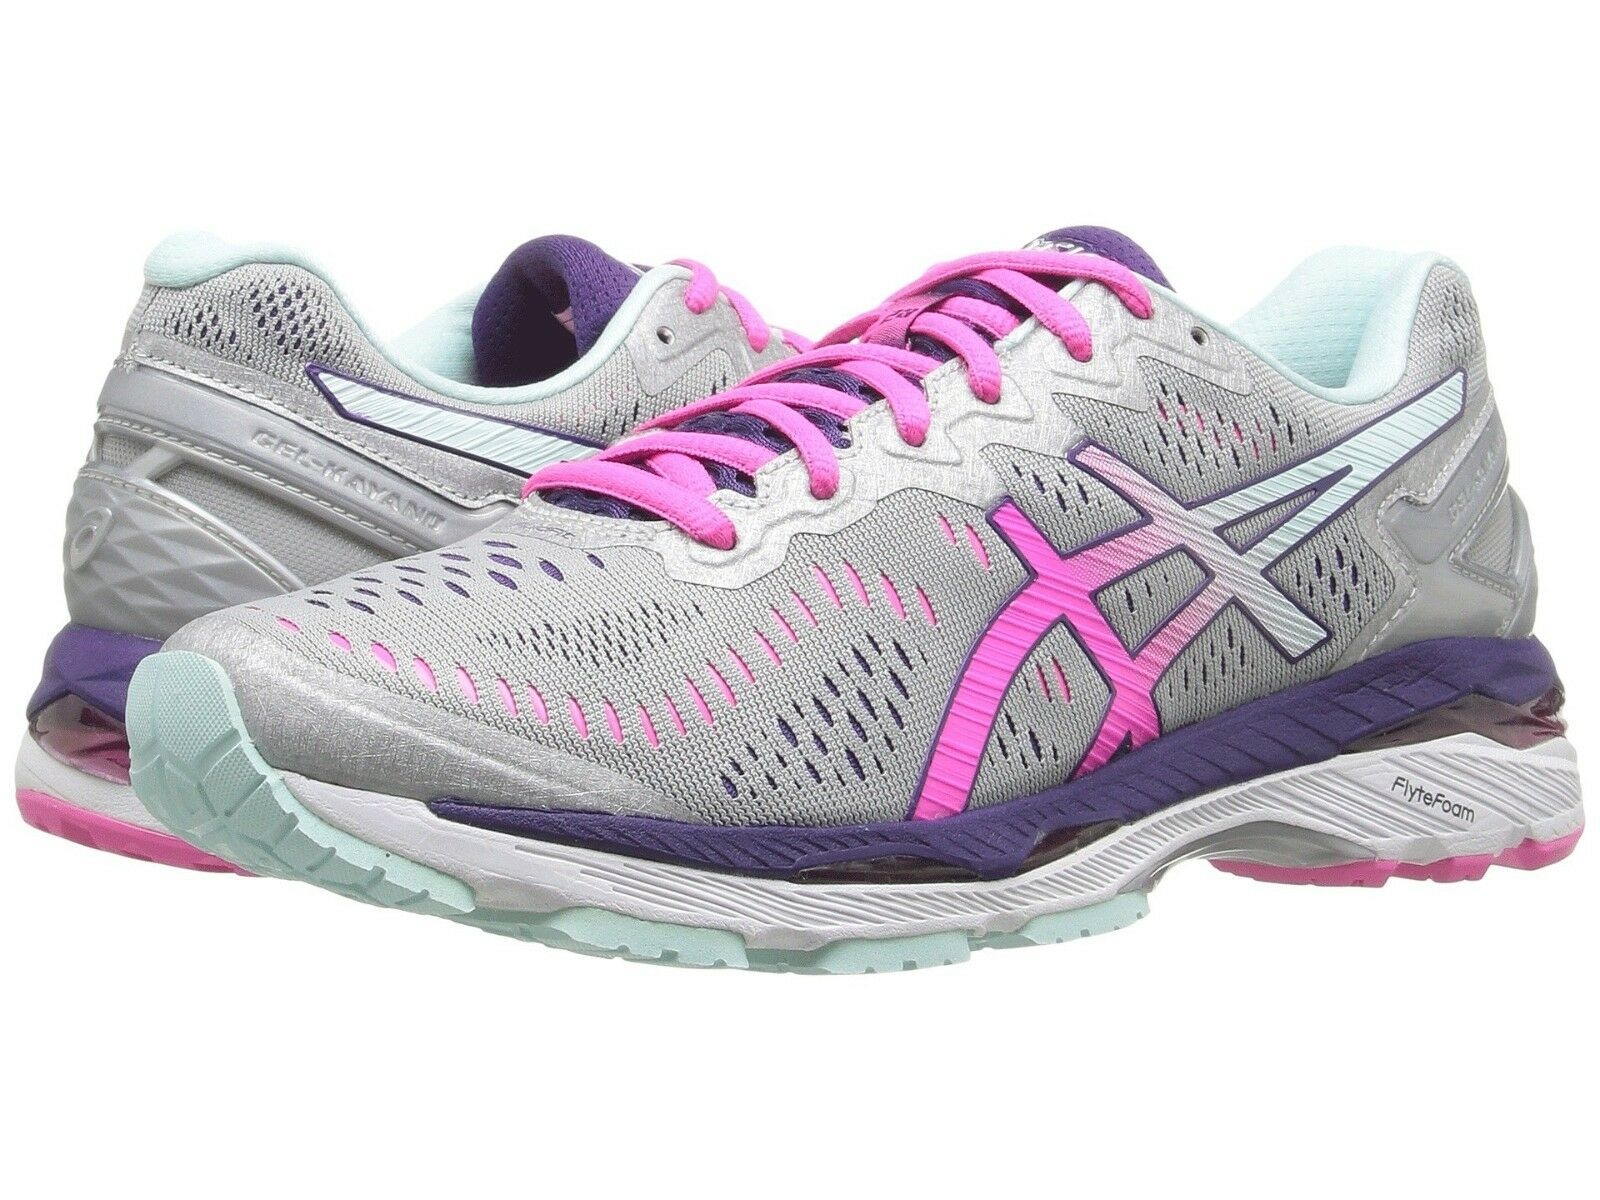 NIB Women's Asics Gel Kayano 23 Running shoes Narrow 2A Choose Size